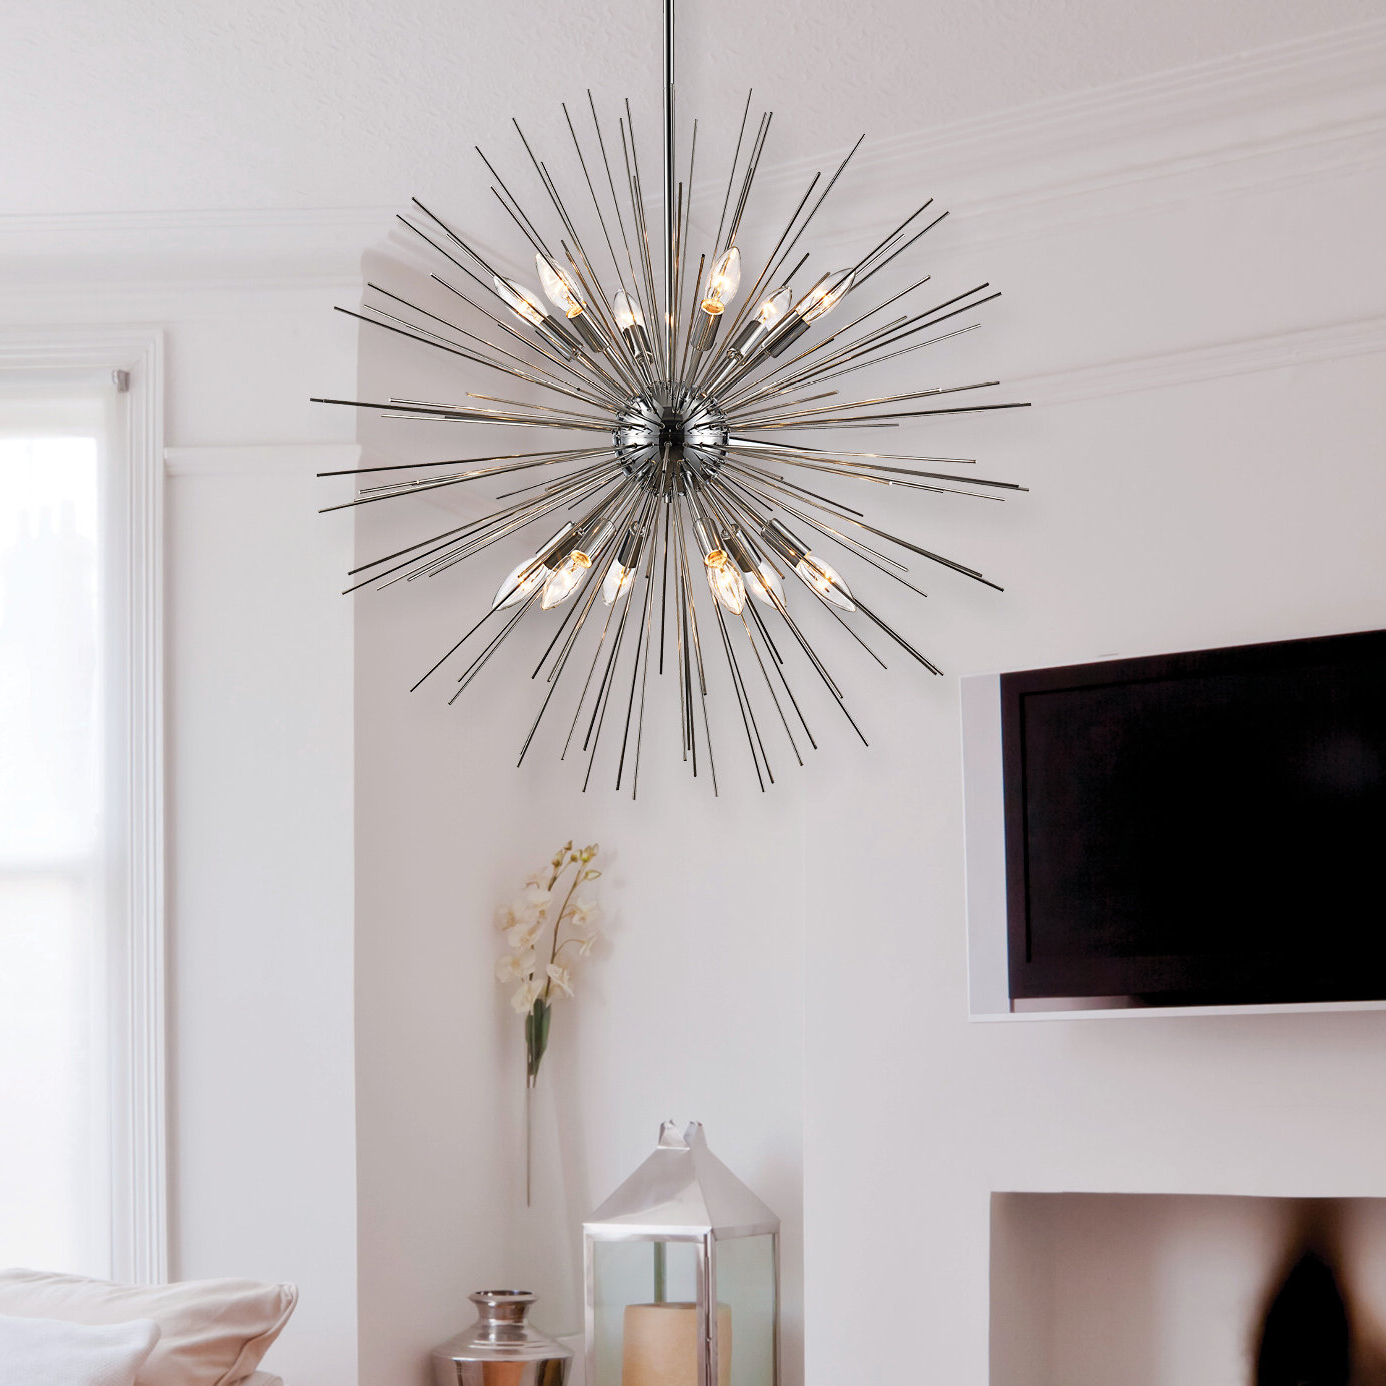 Widely Used Antonie 12 Light Sputnik Chandelier Within Nelly 12 Light Sputnik Chandeliers (View 19 of 20)